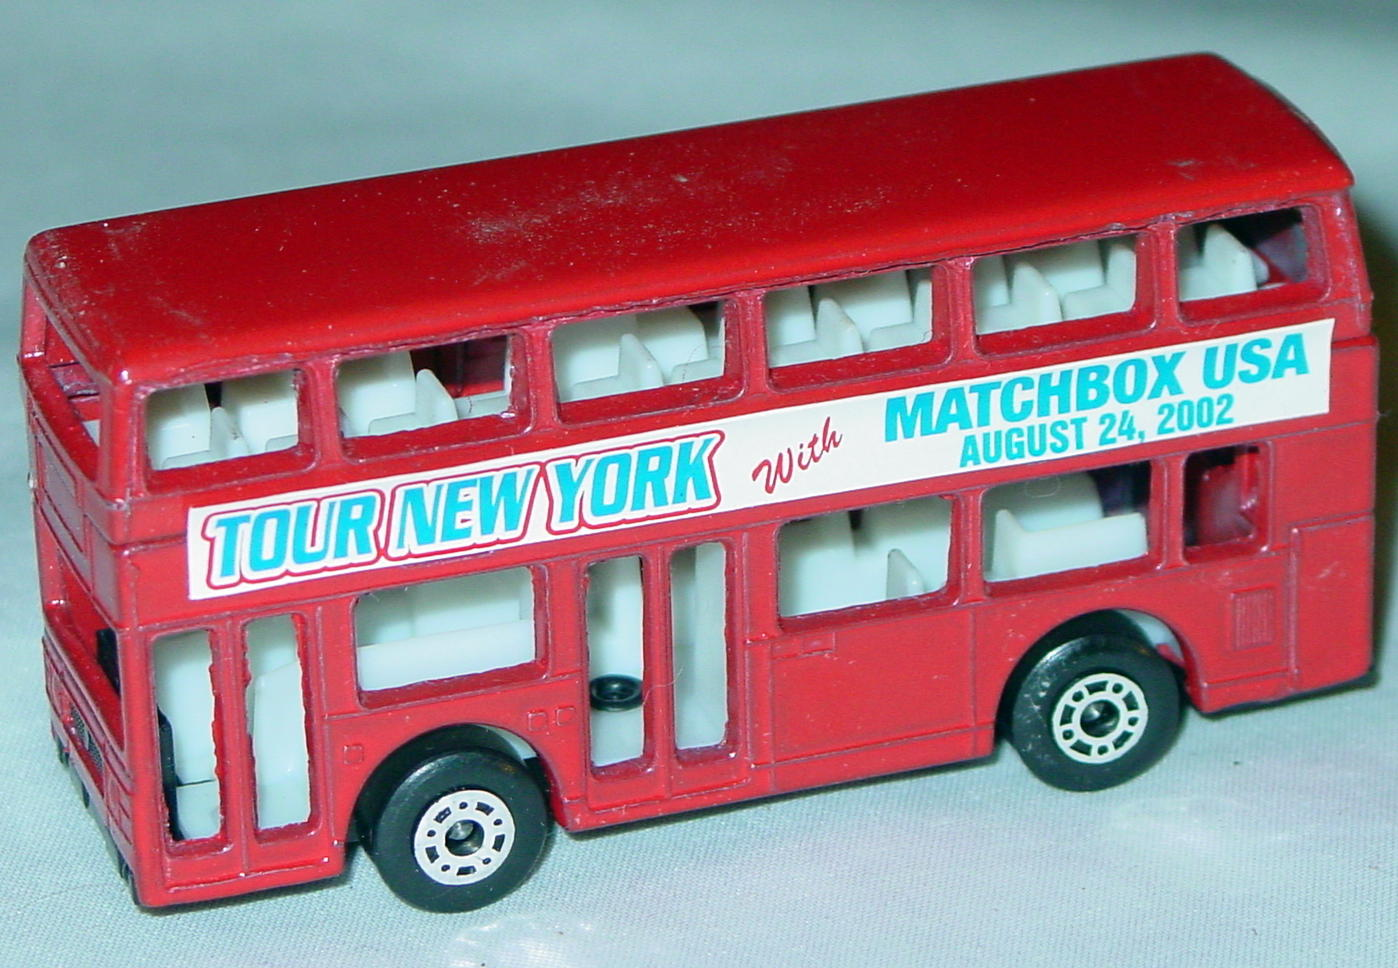 ASAP-CCI 17 C 65 - Titan Bus Red Tour NY Matchbox USA CCI